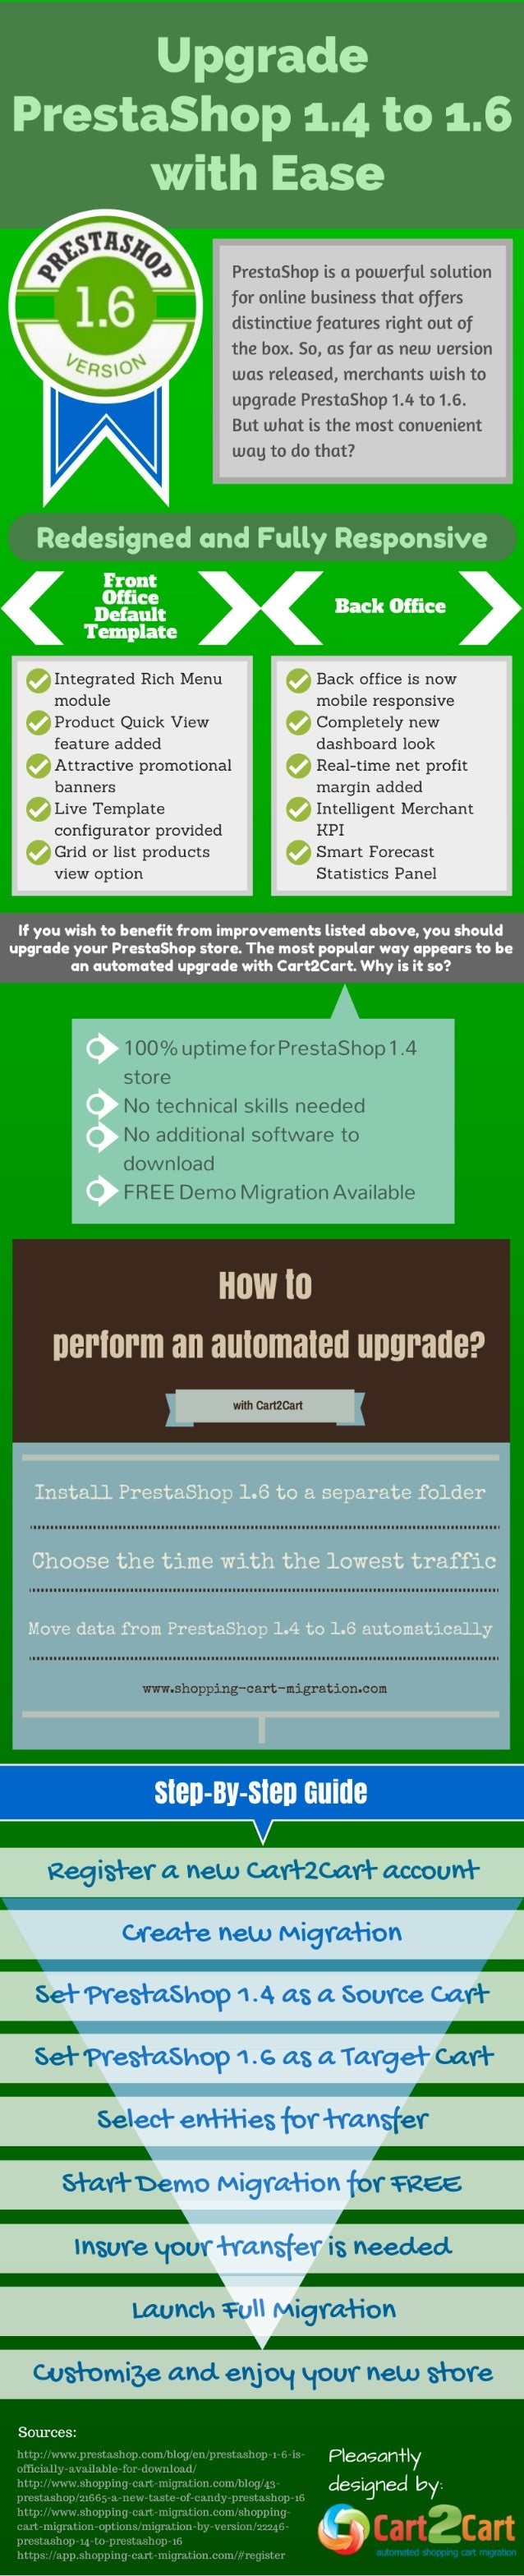 How To Upgrade PrestaShop 1.4 To 1.6 With Ease